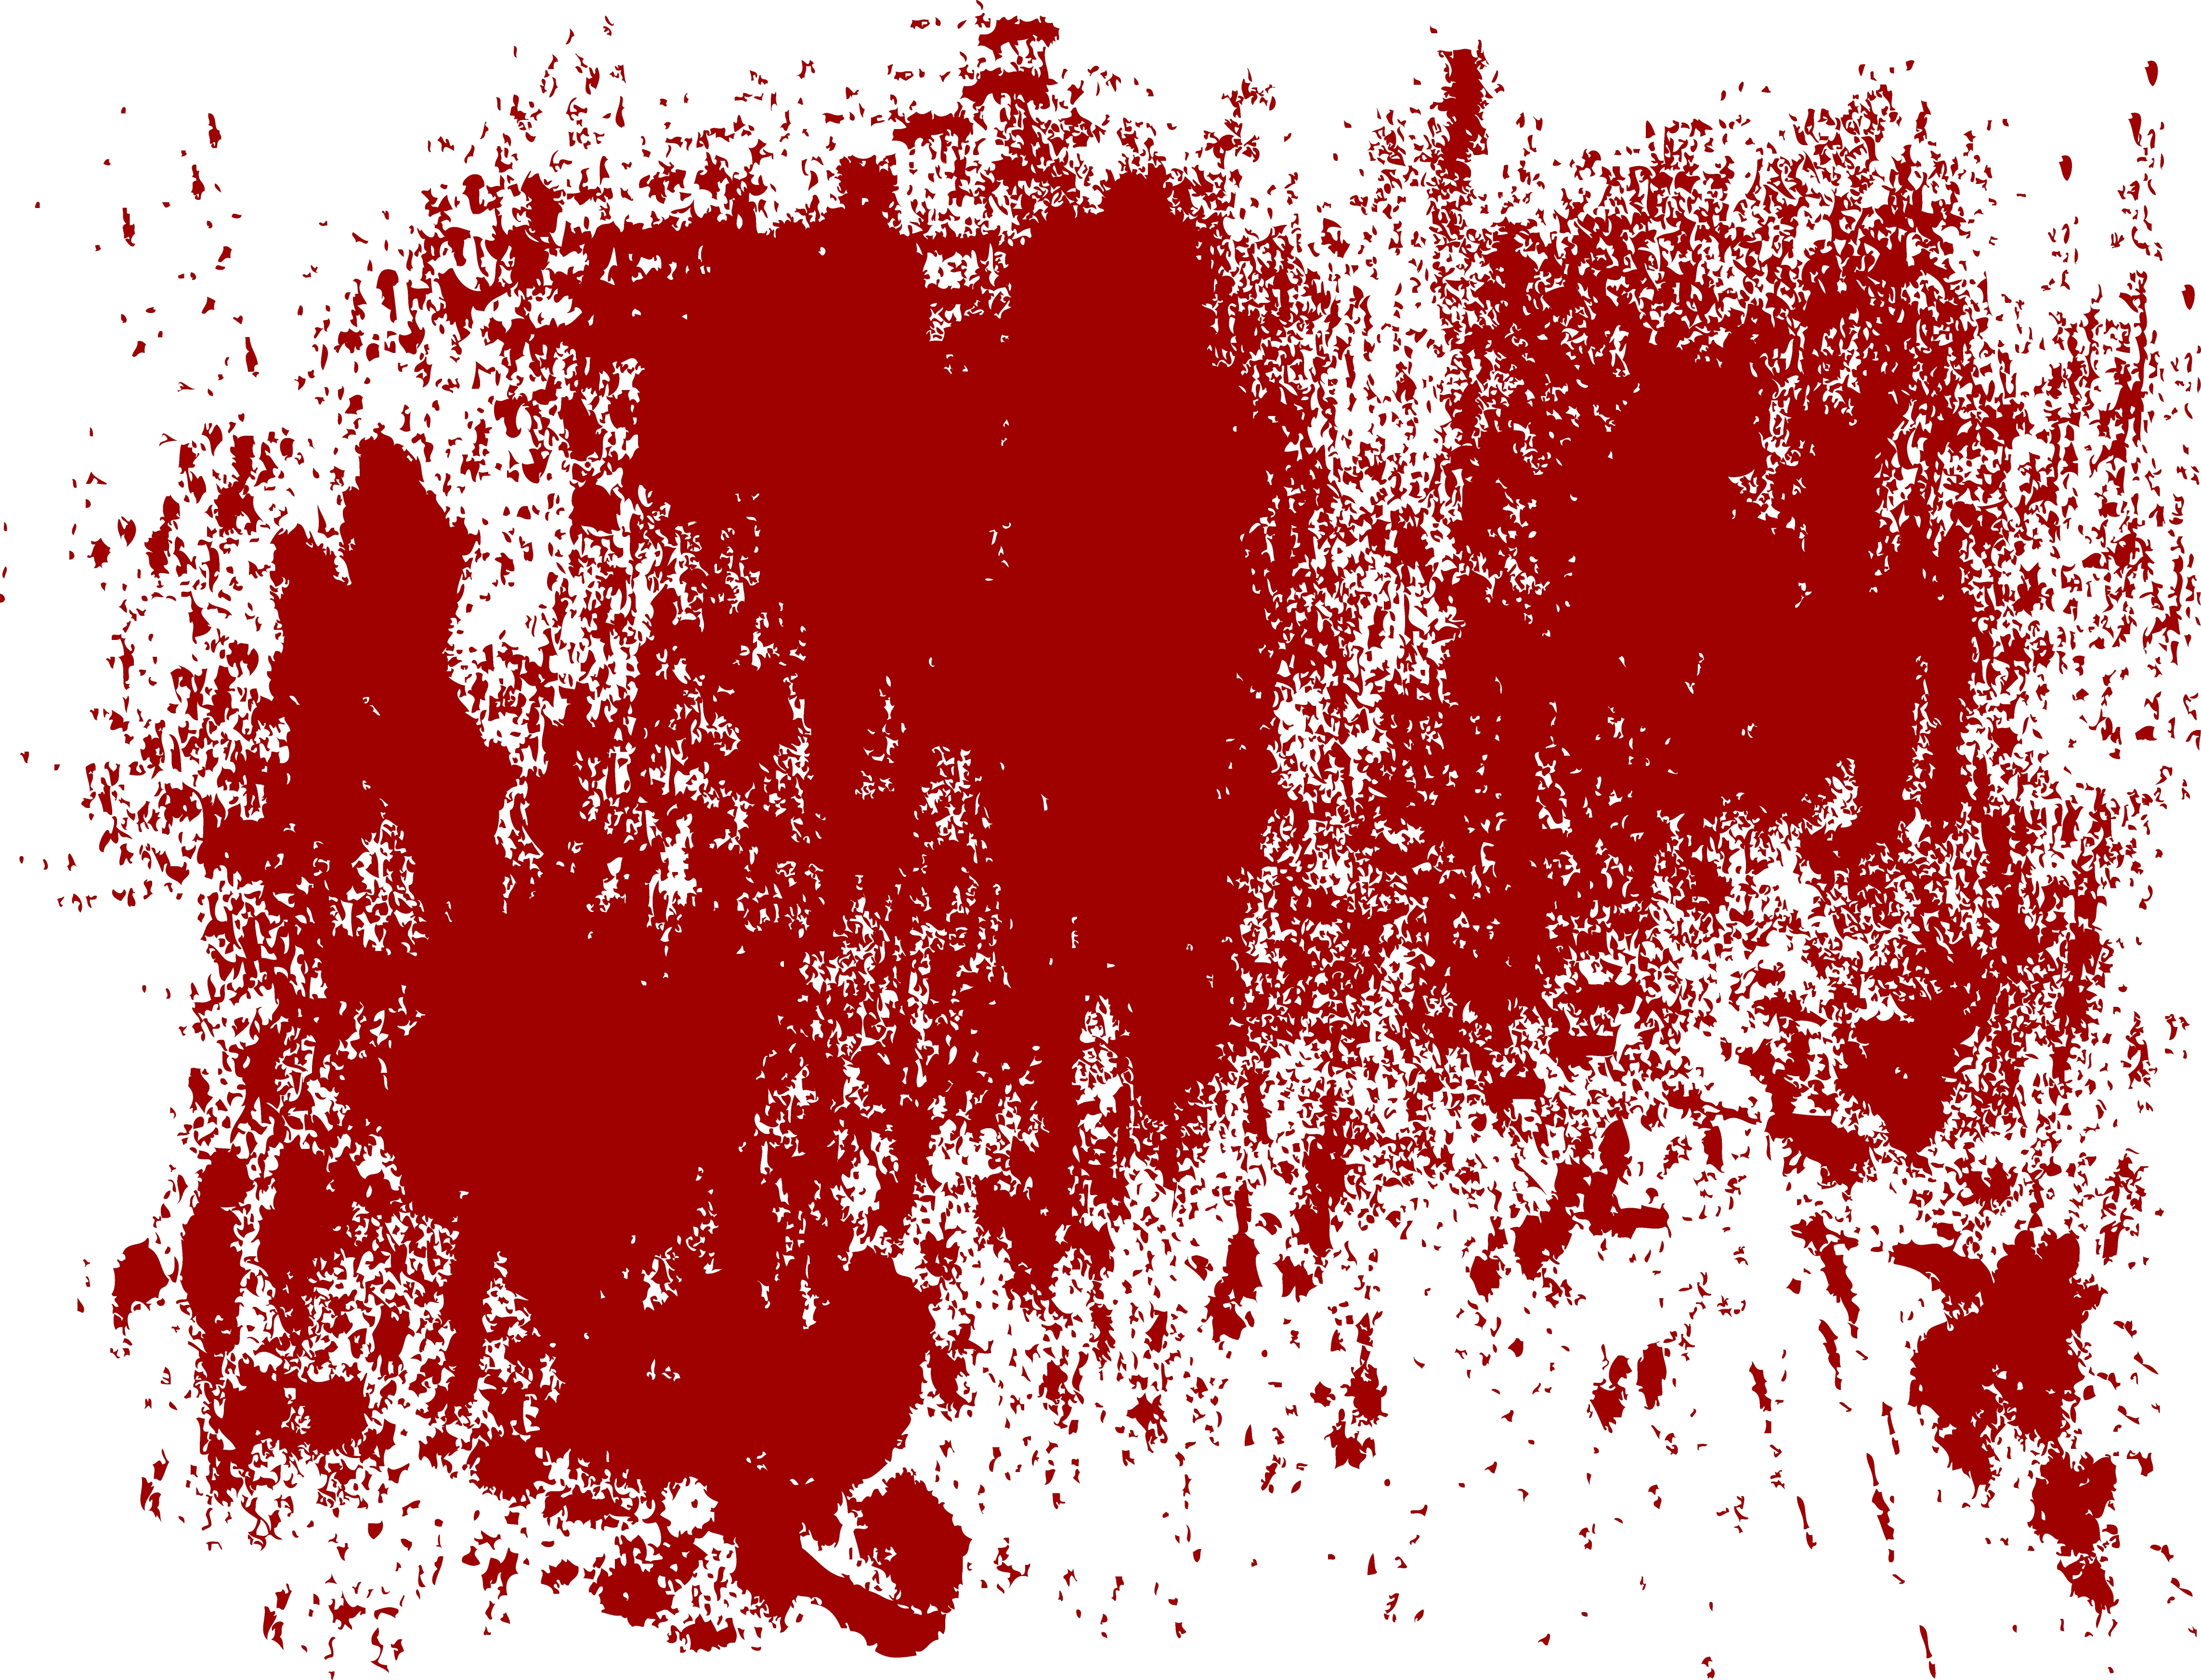 Red grunge background png. Texture paint a large